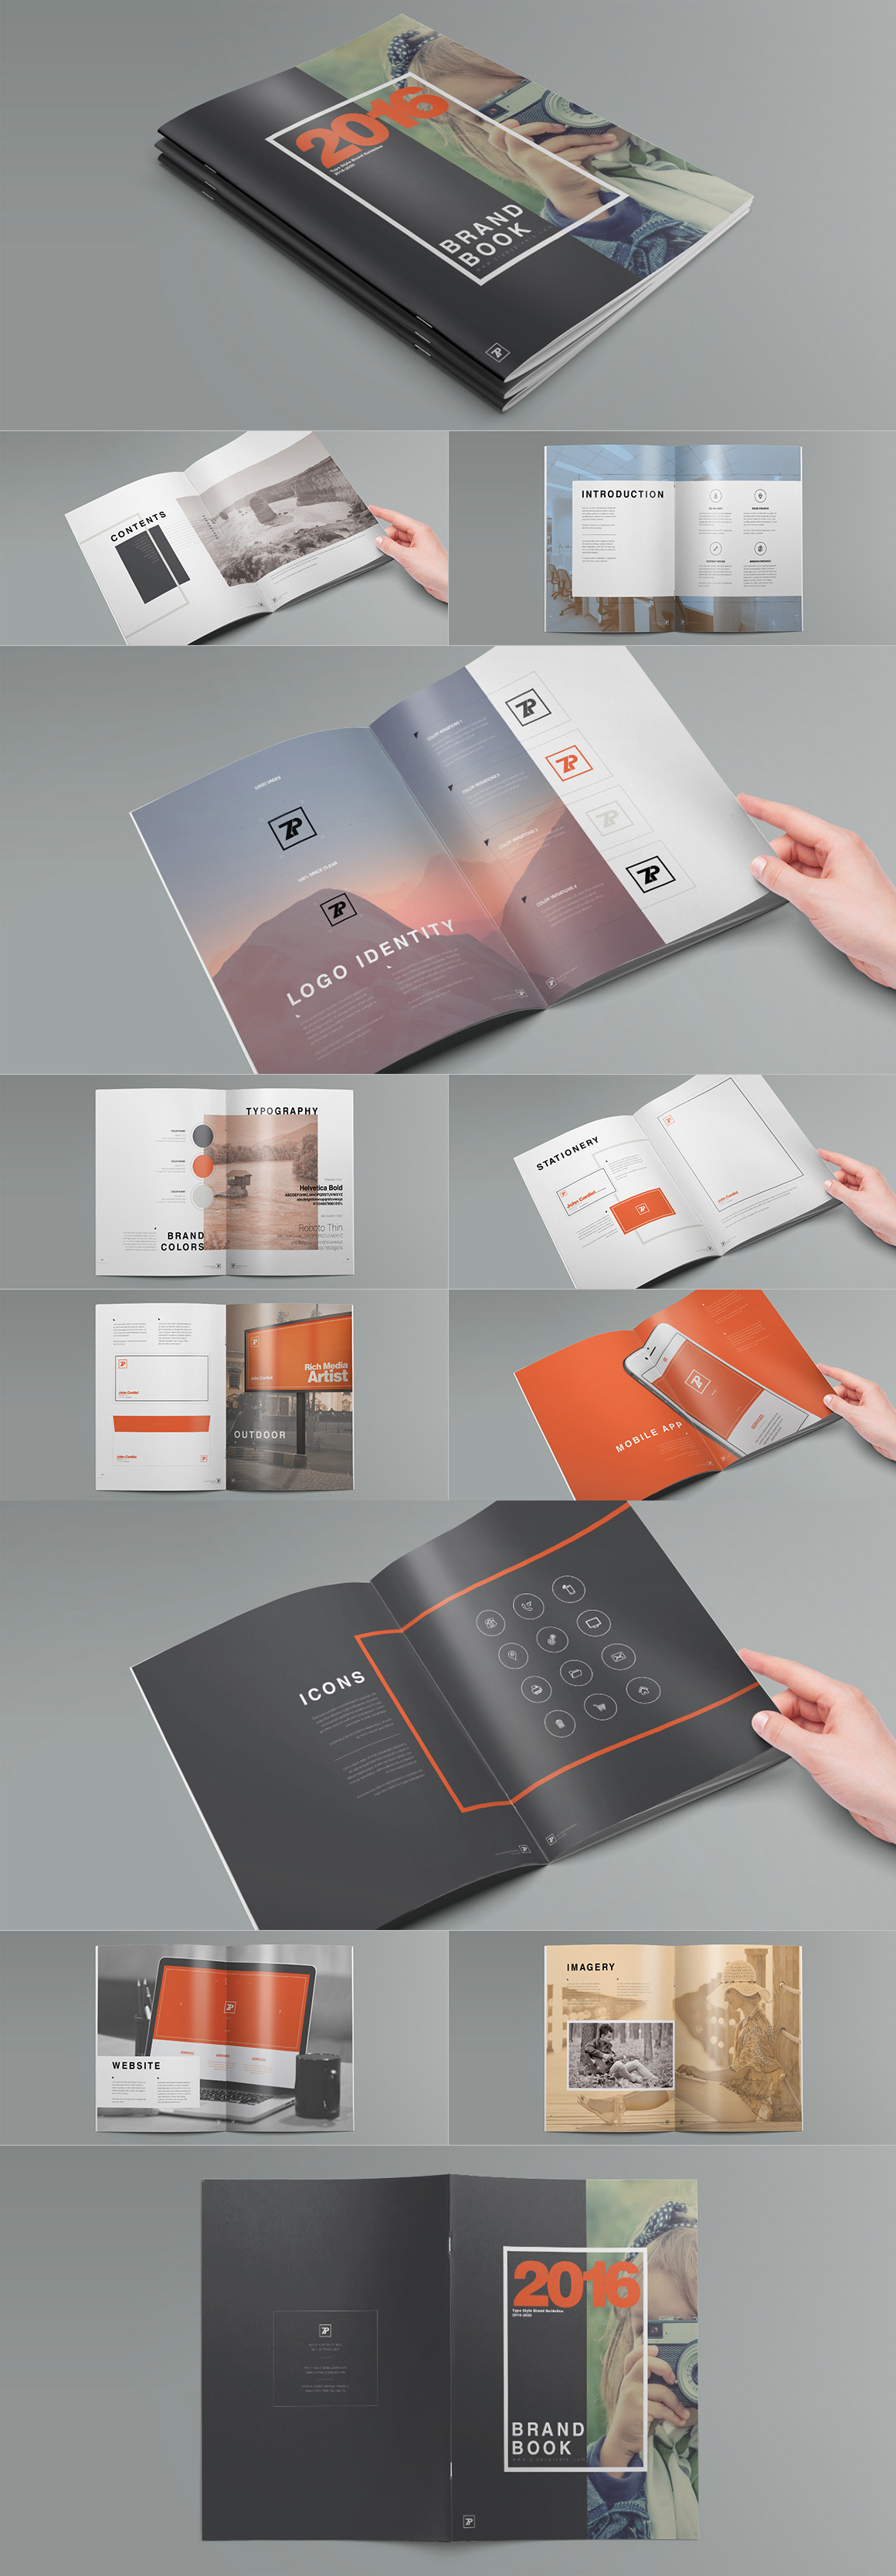 Style Guide & Brand Book Templates-strip15